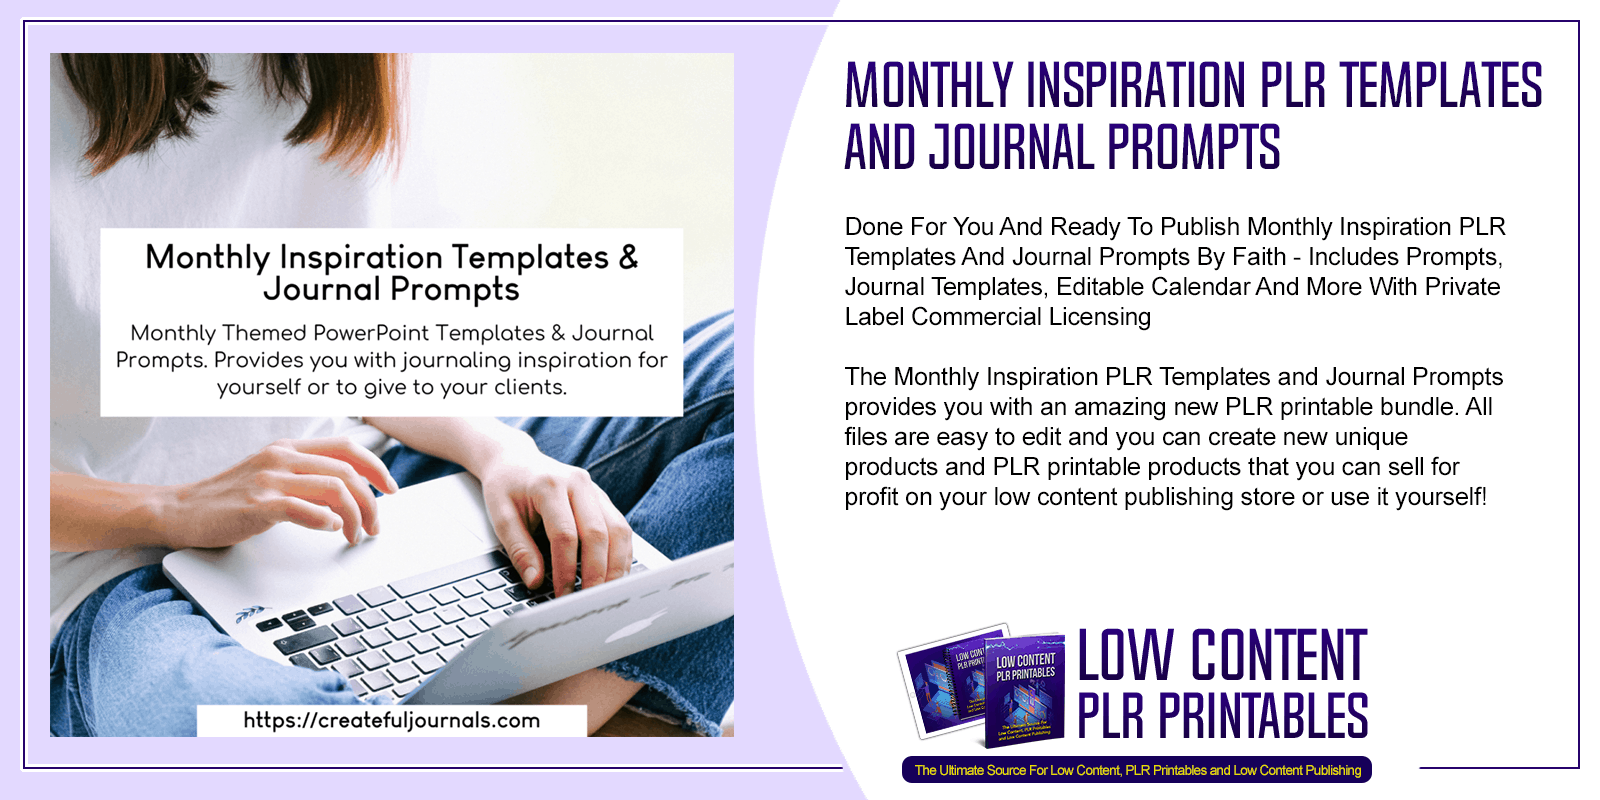 Monthly Inspiration PLR Templates and Journal Prompts